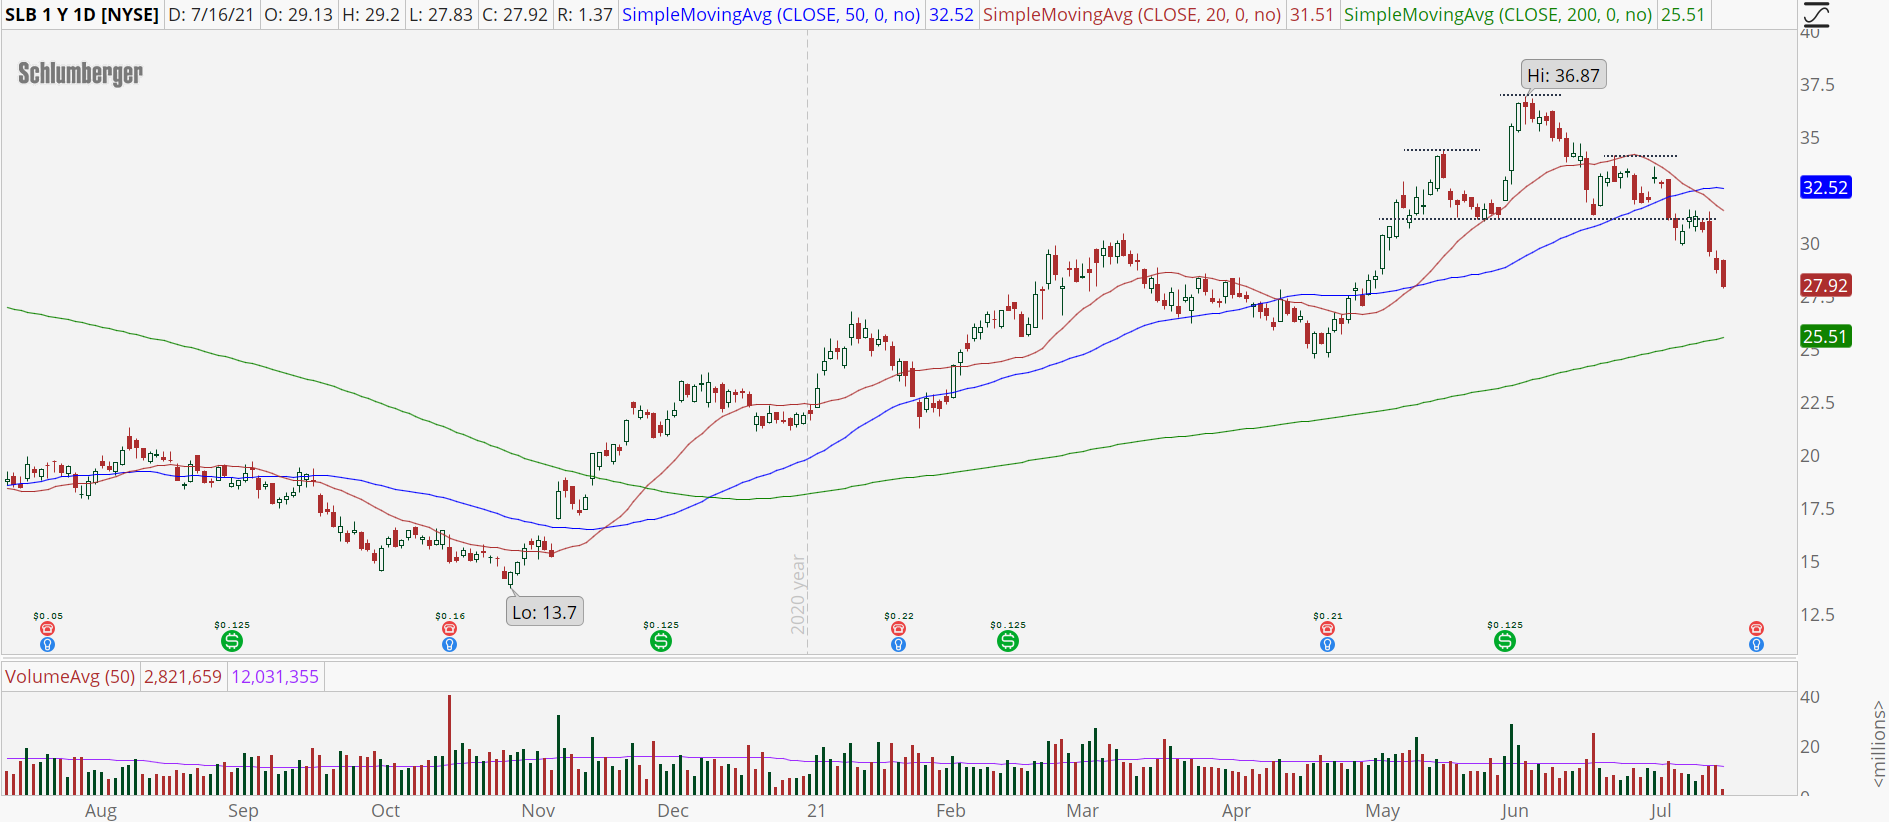 Schlumberger (SLB) stock with head-and-shoulders pattern.